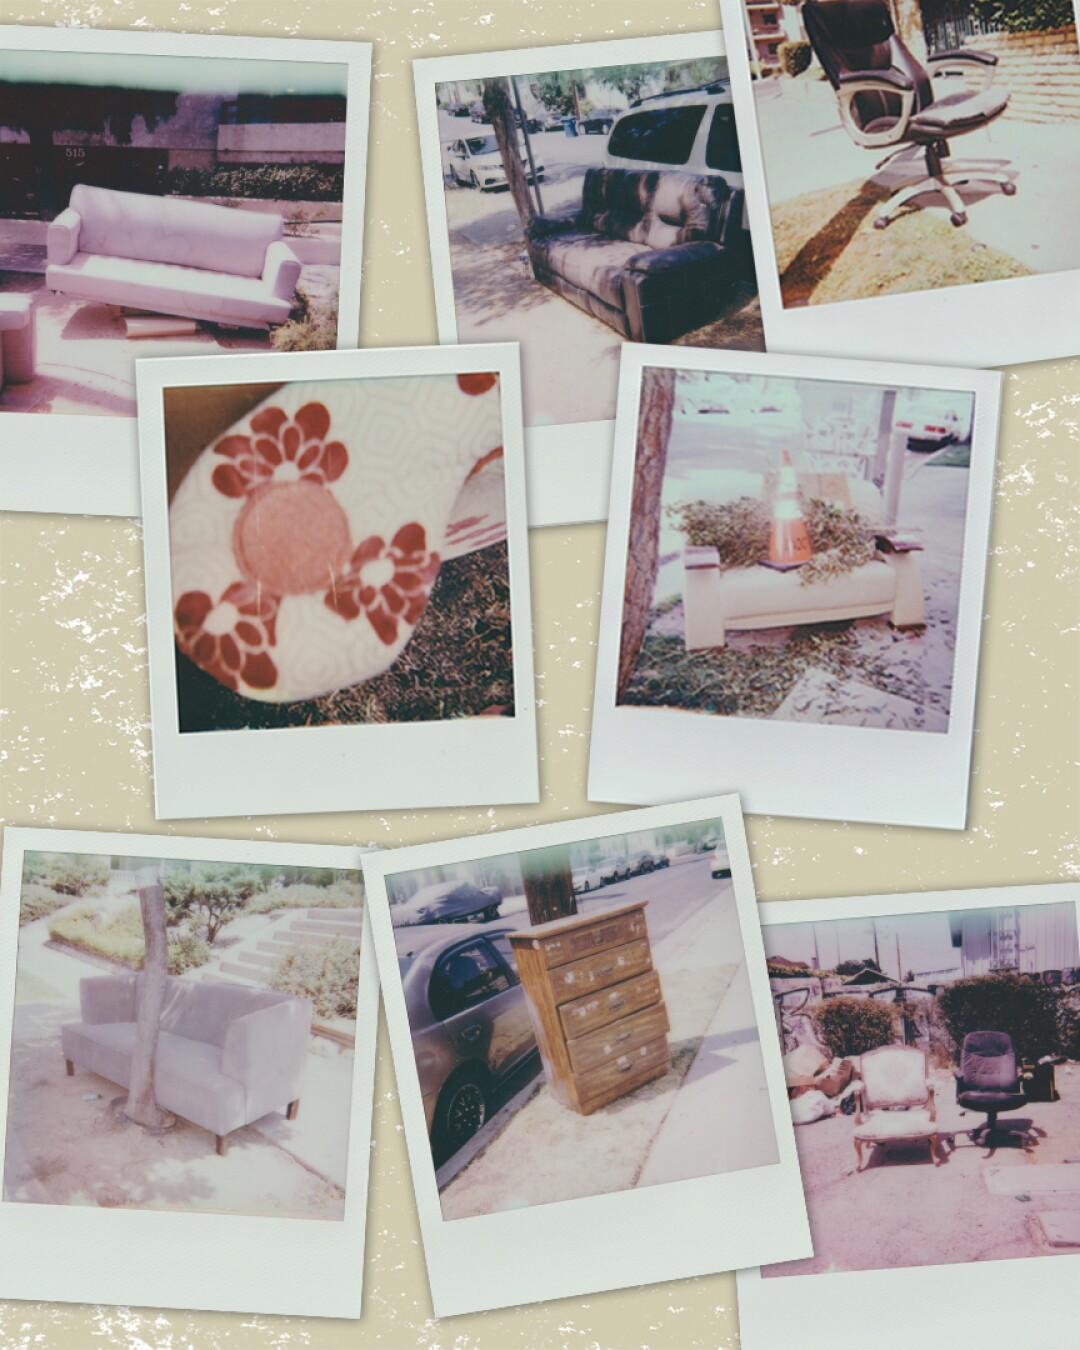 Photos of furniture found on the street